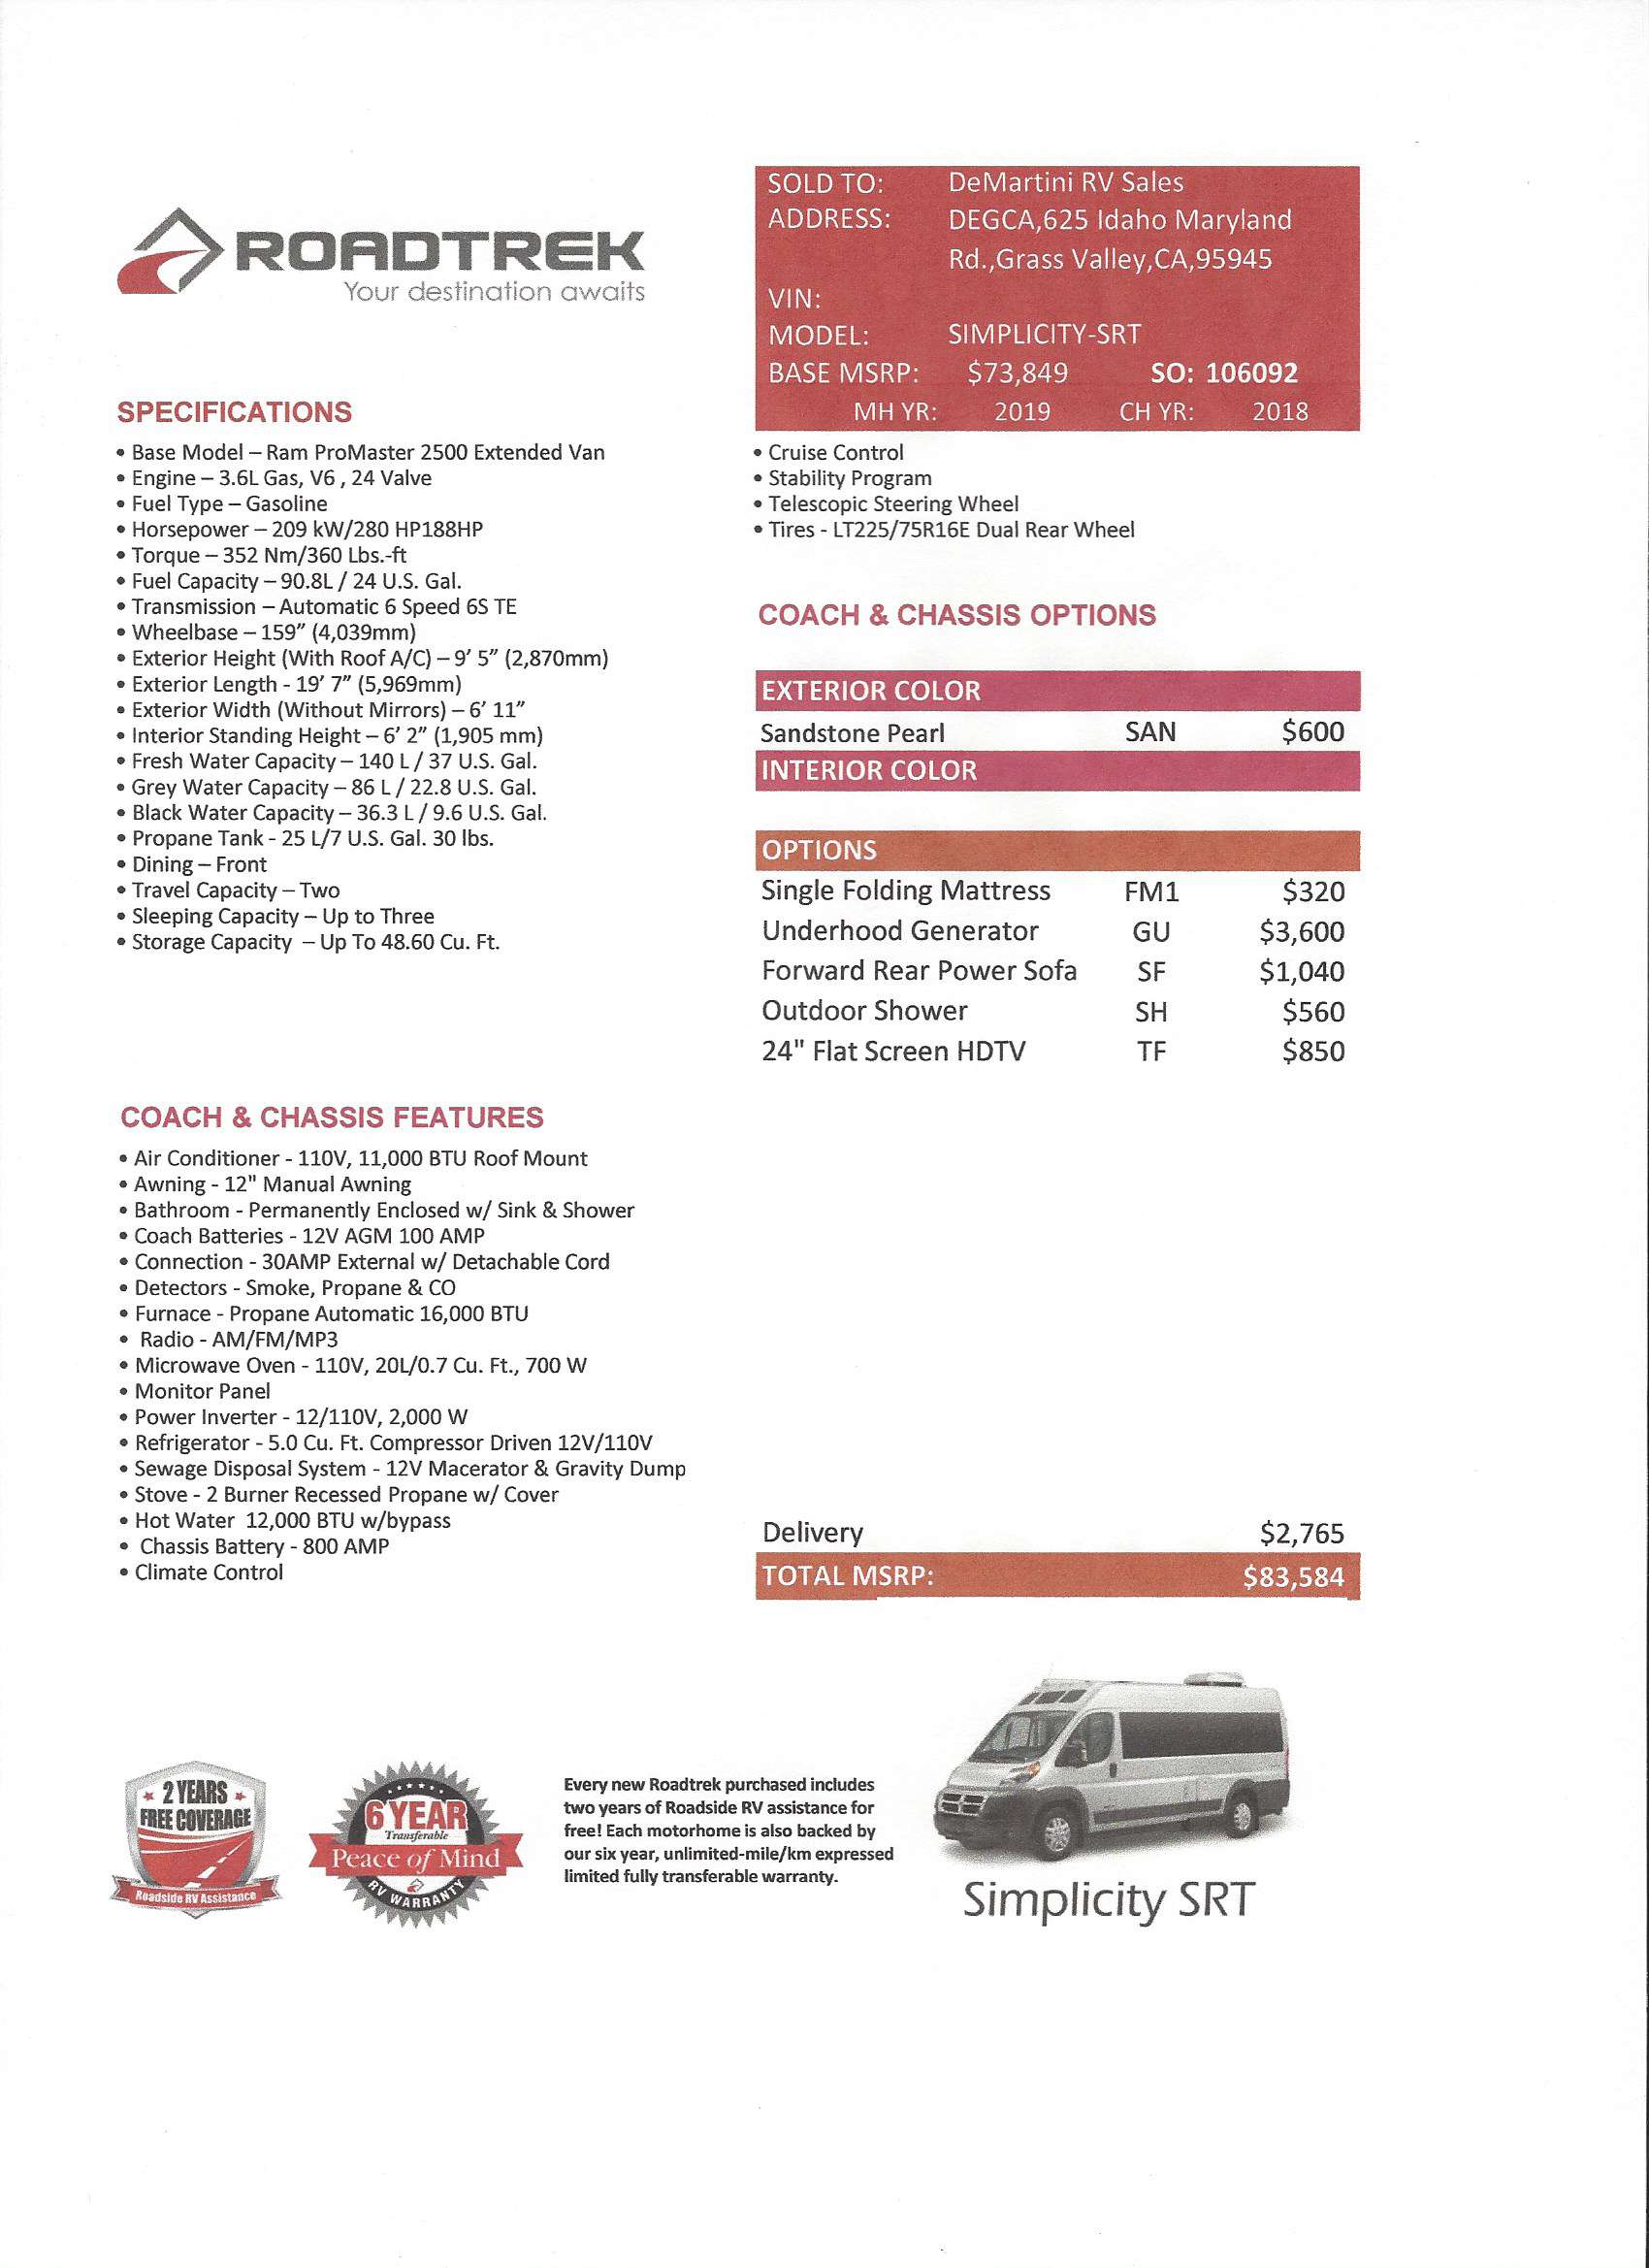 2019 Roadtrek Simplicity SRT MSRP Sheet